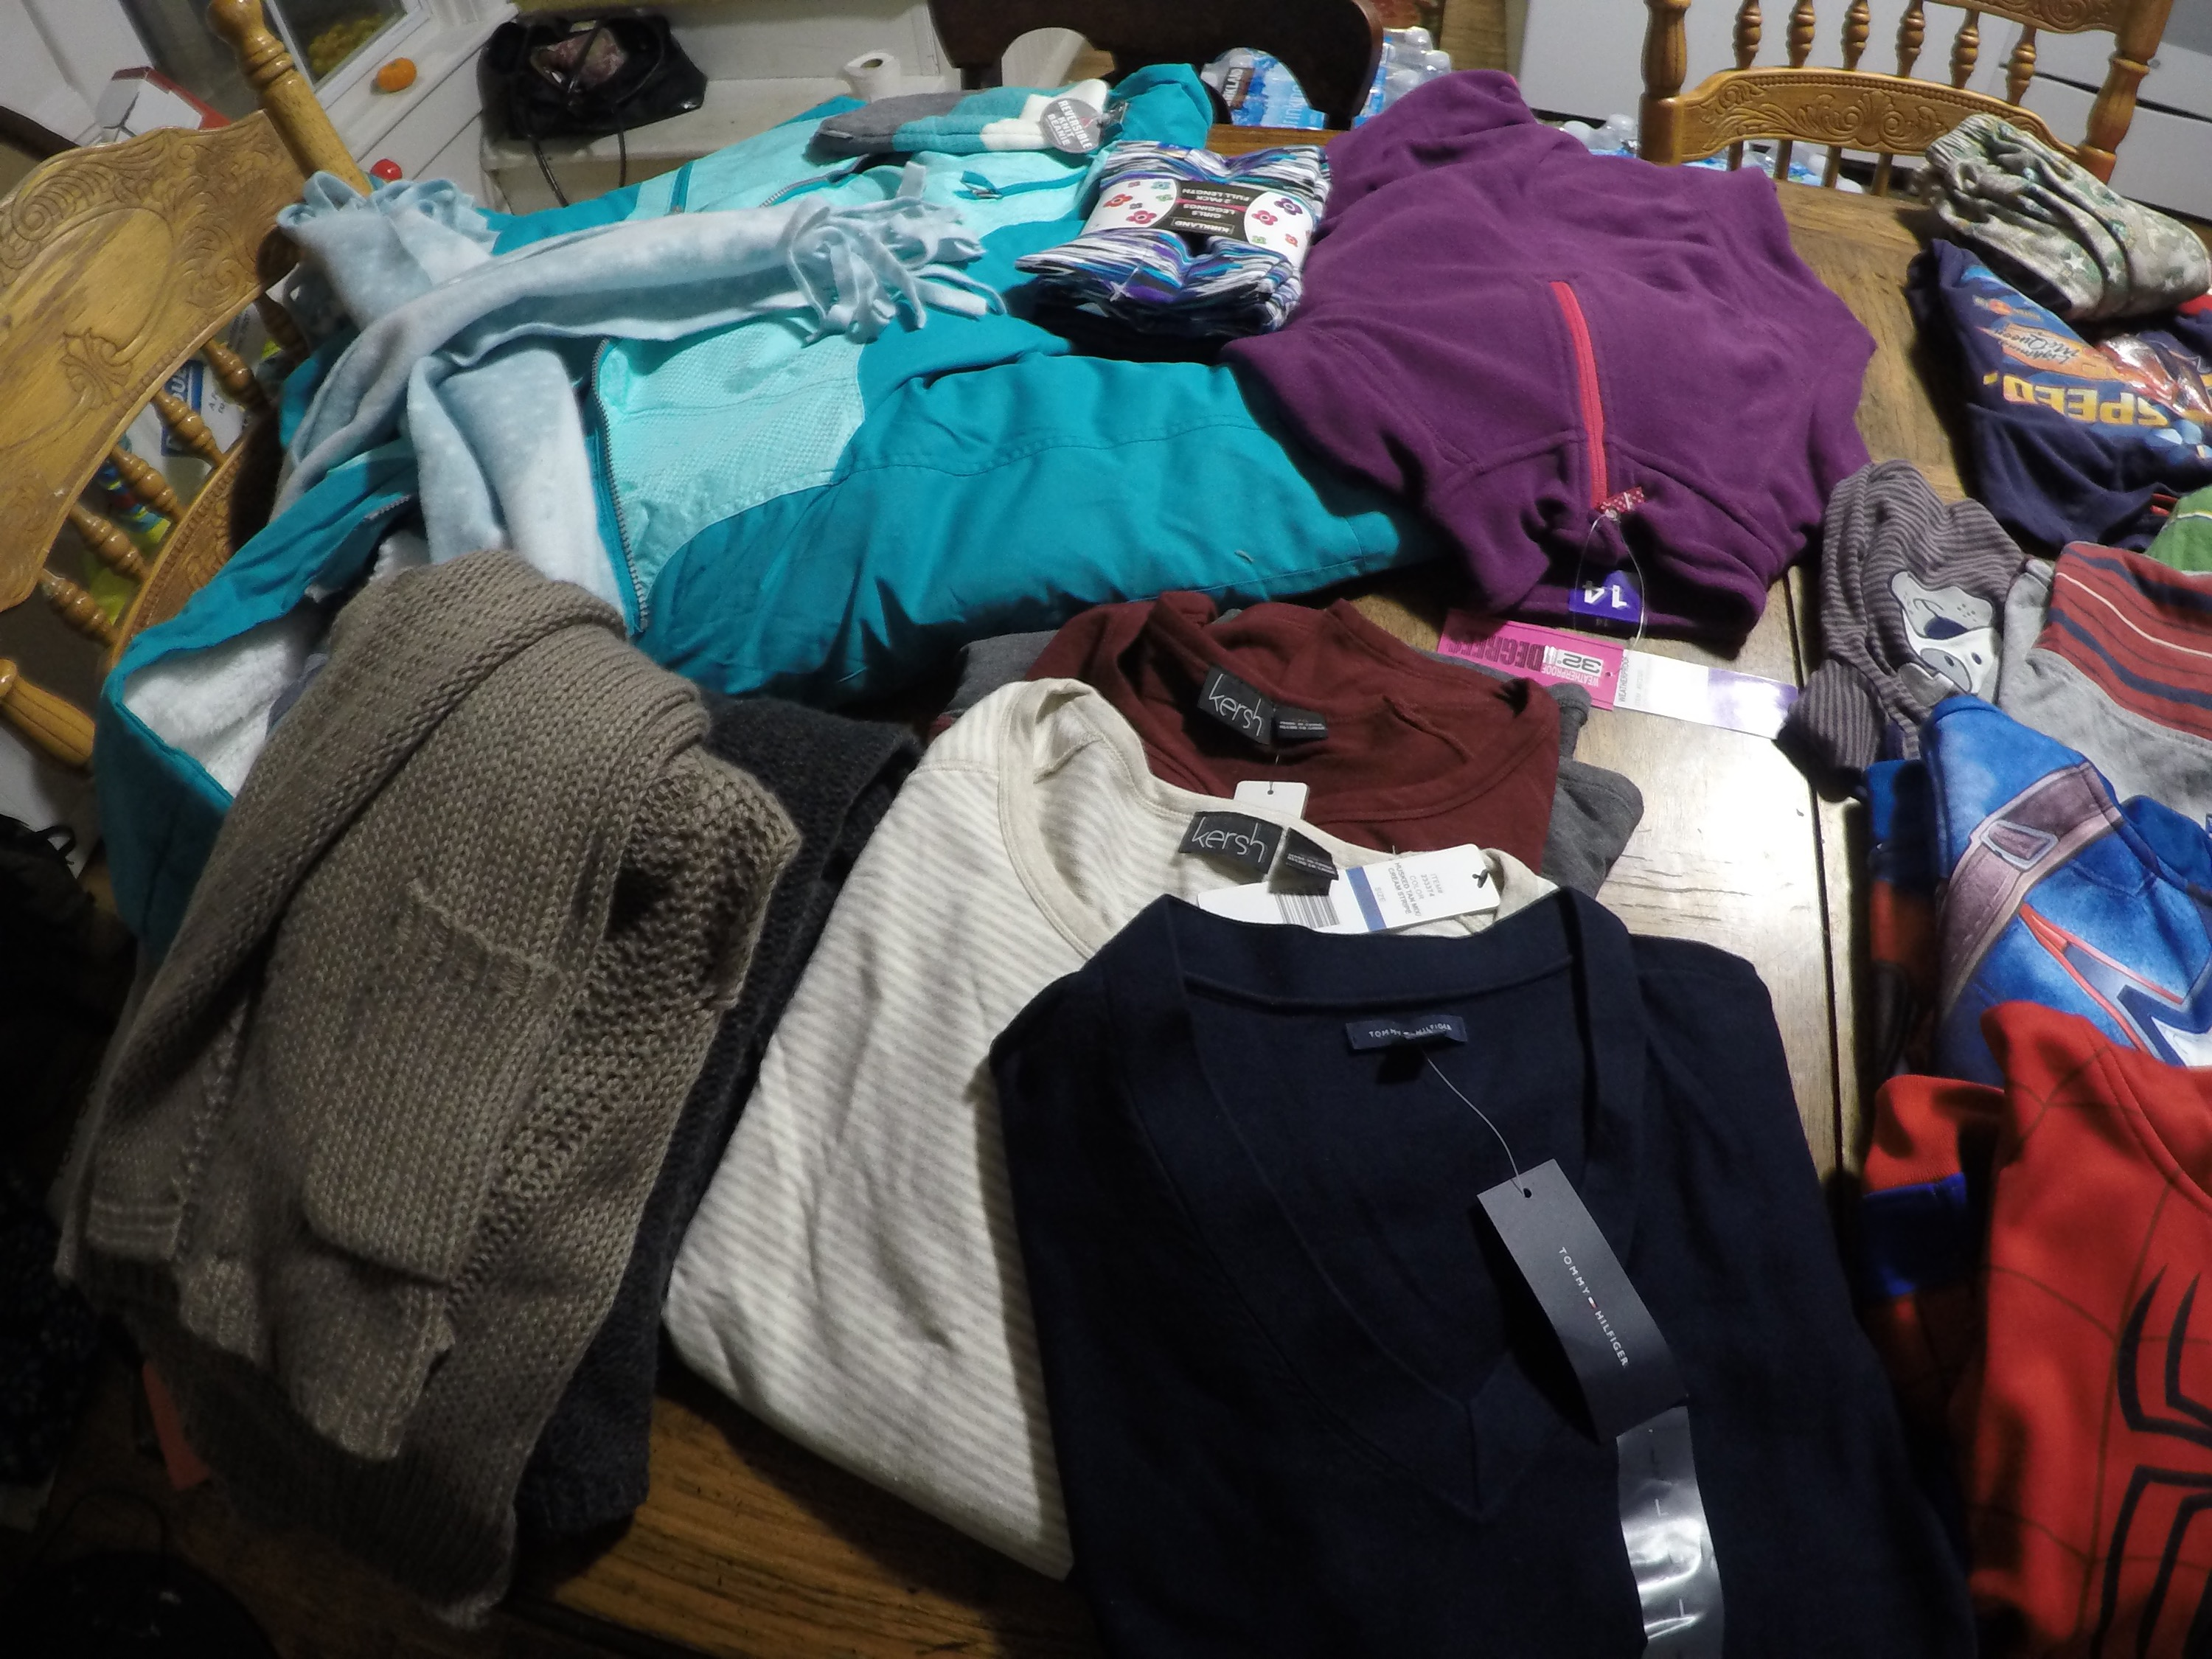 04b4f715b79 Here s the full Growing Family Fall Thrift Store and Costco Clothing Haul.